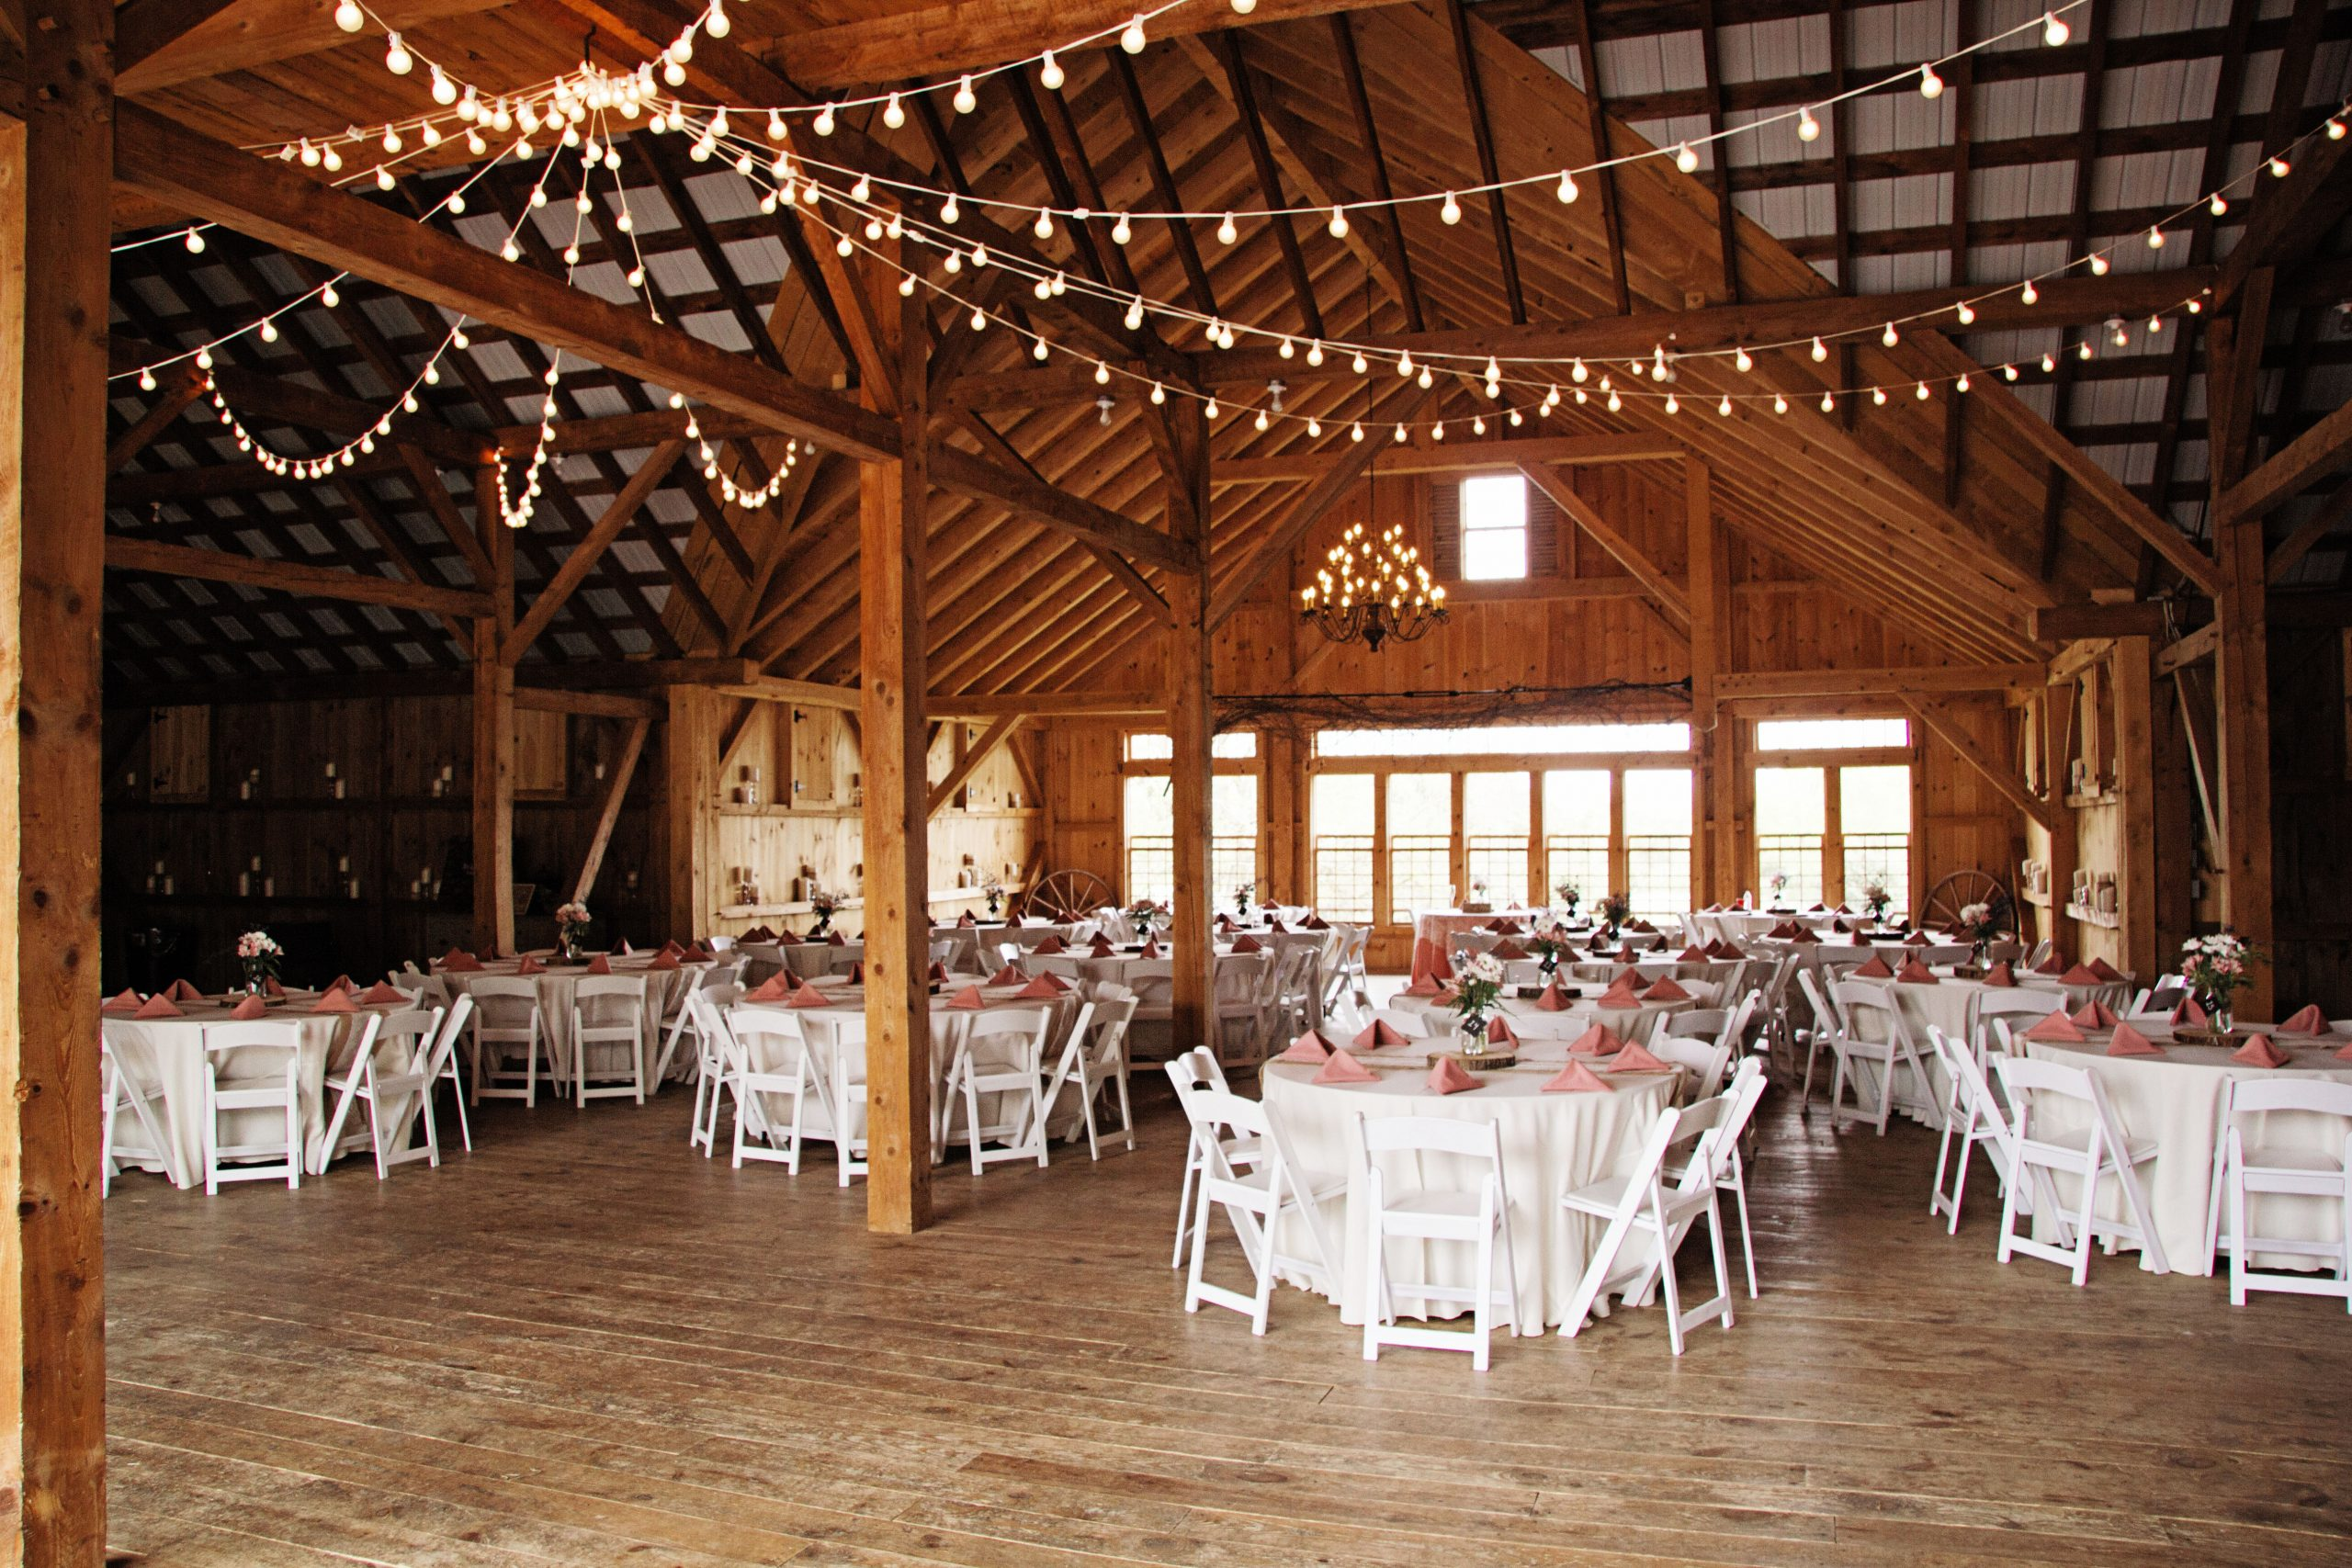 Lakeview Farms of York, PA offers couples a chance to bring it down a notch and really wnjoy the company you have. Lovefusion beautifully displays that with this picture of the simple, yet elegant reception hall. Featured on Dream Weddings.